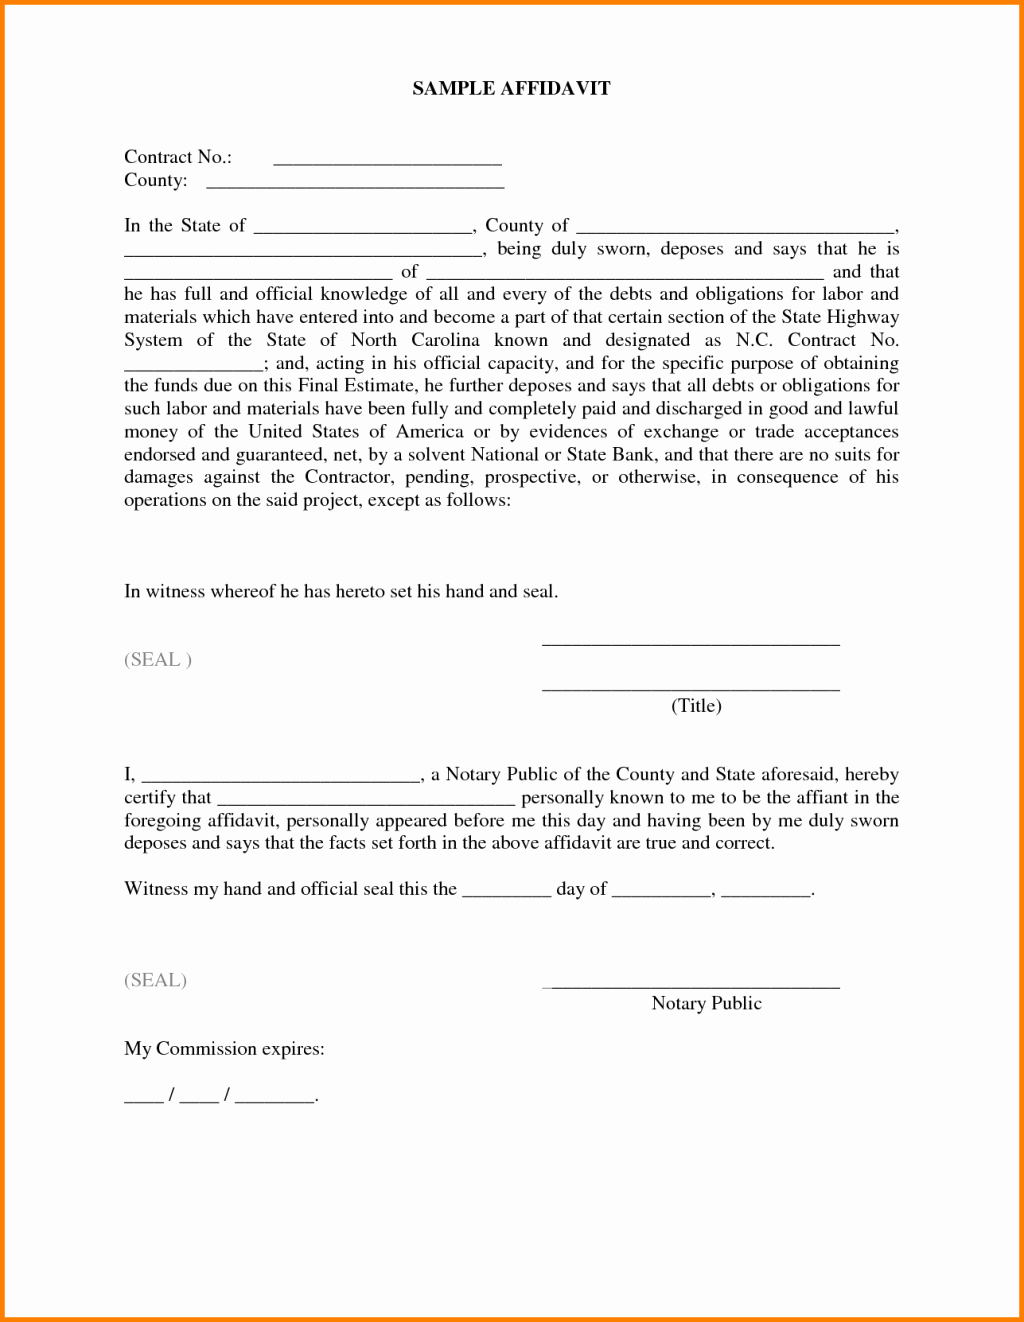 Affidavit Of Single Status Template Awesome Impressive Sample Of Affidavit form Template with some